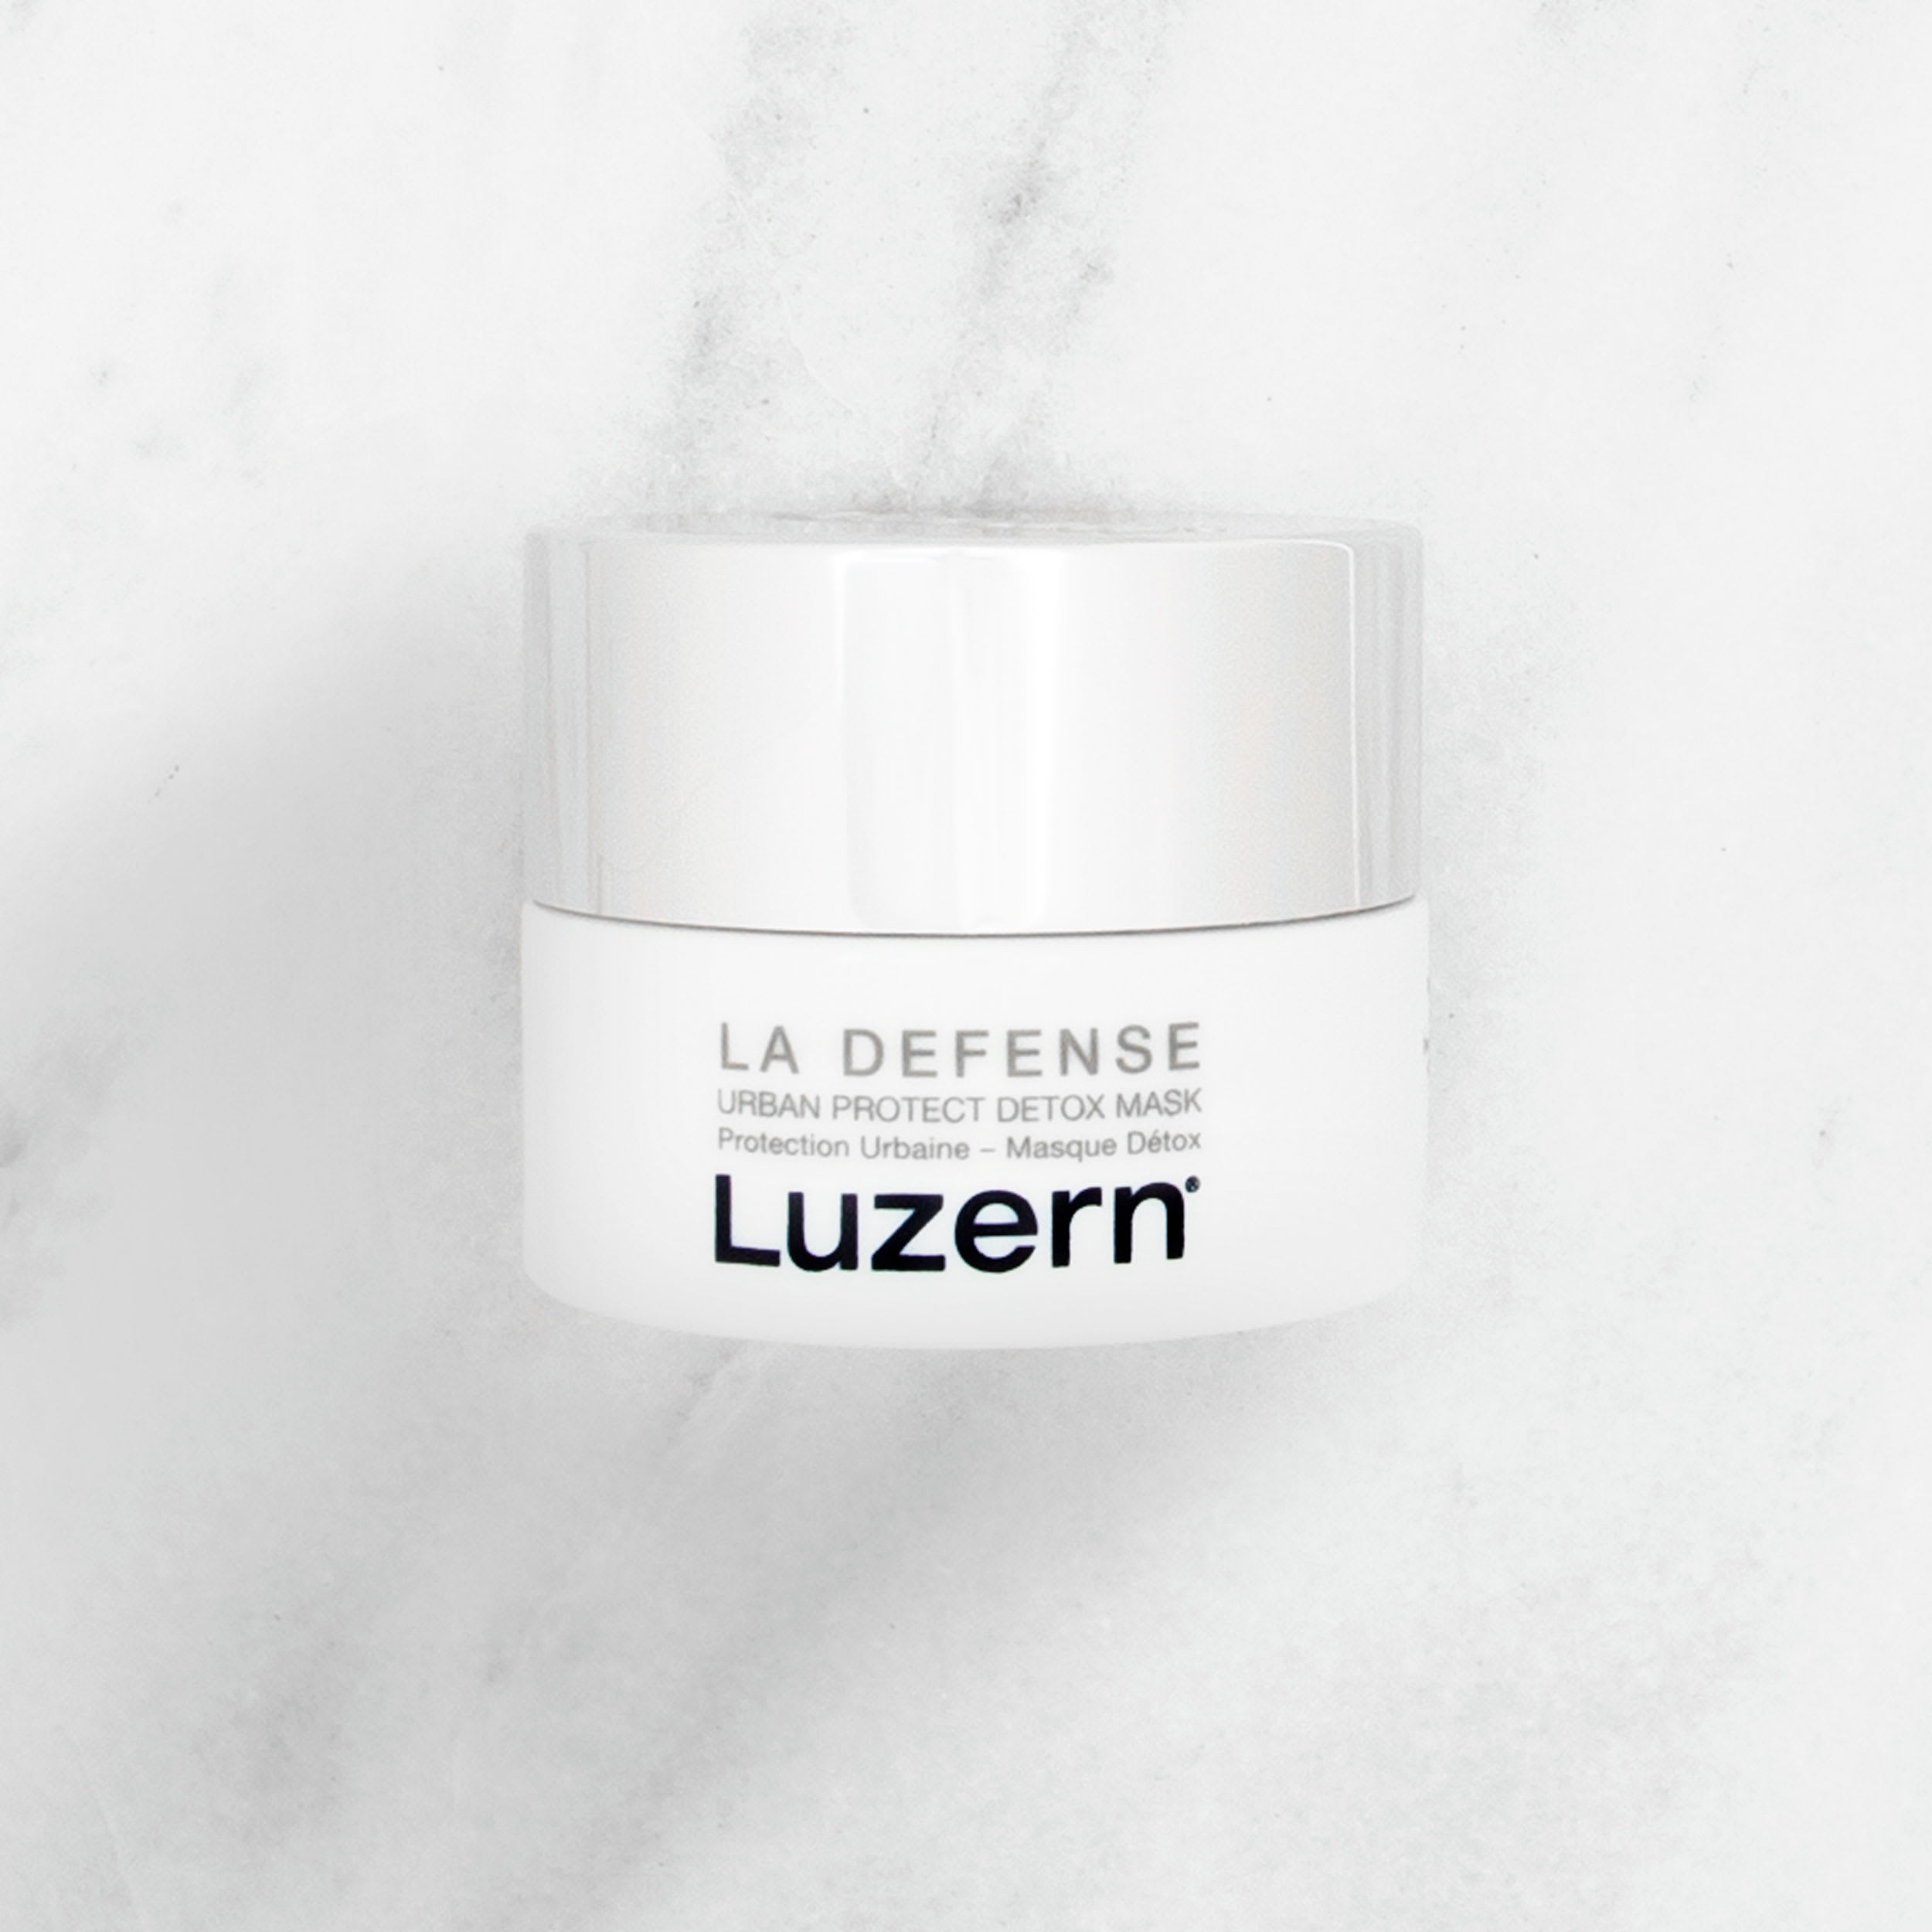 Luzern's LaDefense Urban Protect Detox Mask